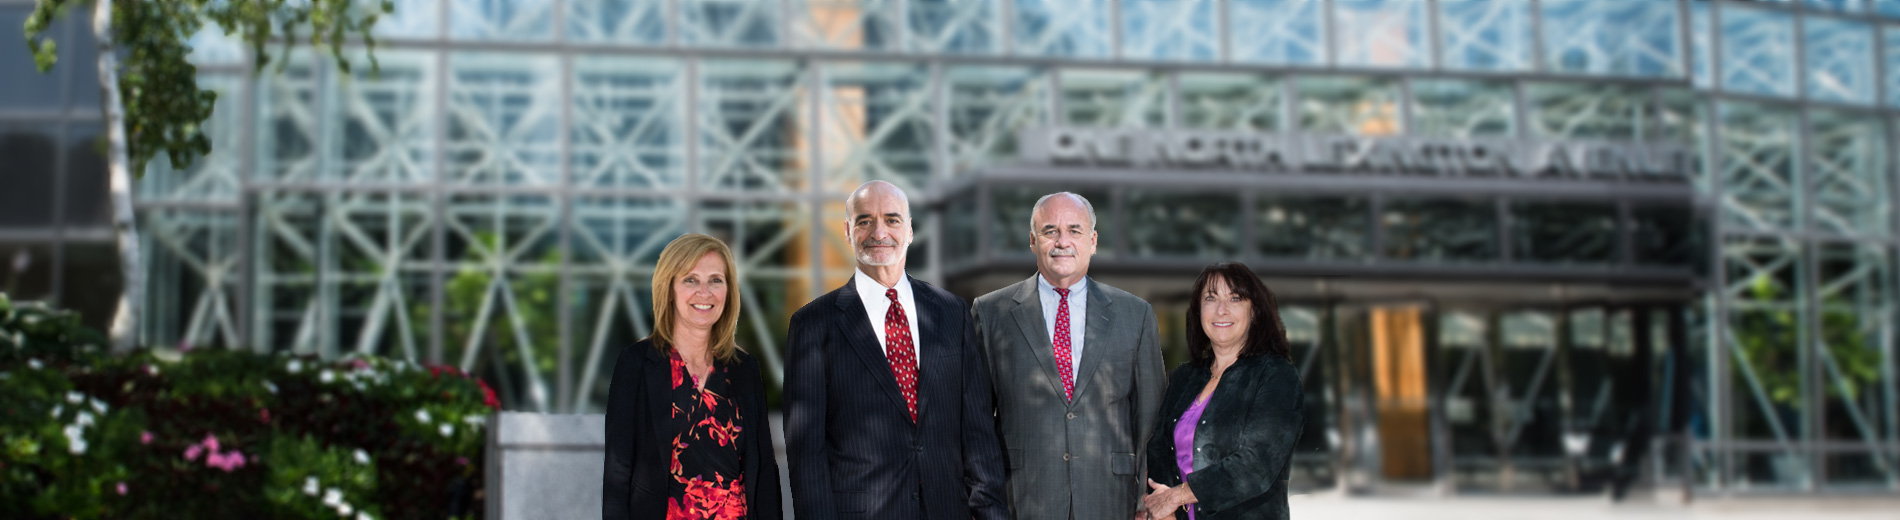 Our team of White Plains personal injury lawyers at Keegan, Keegan & Strutt, PLLC